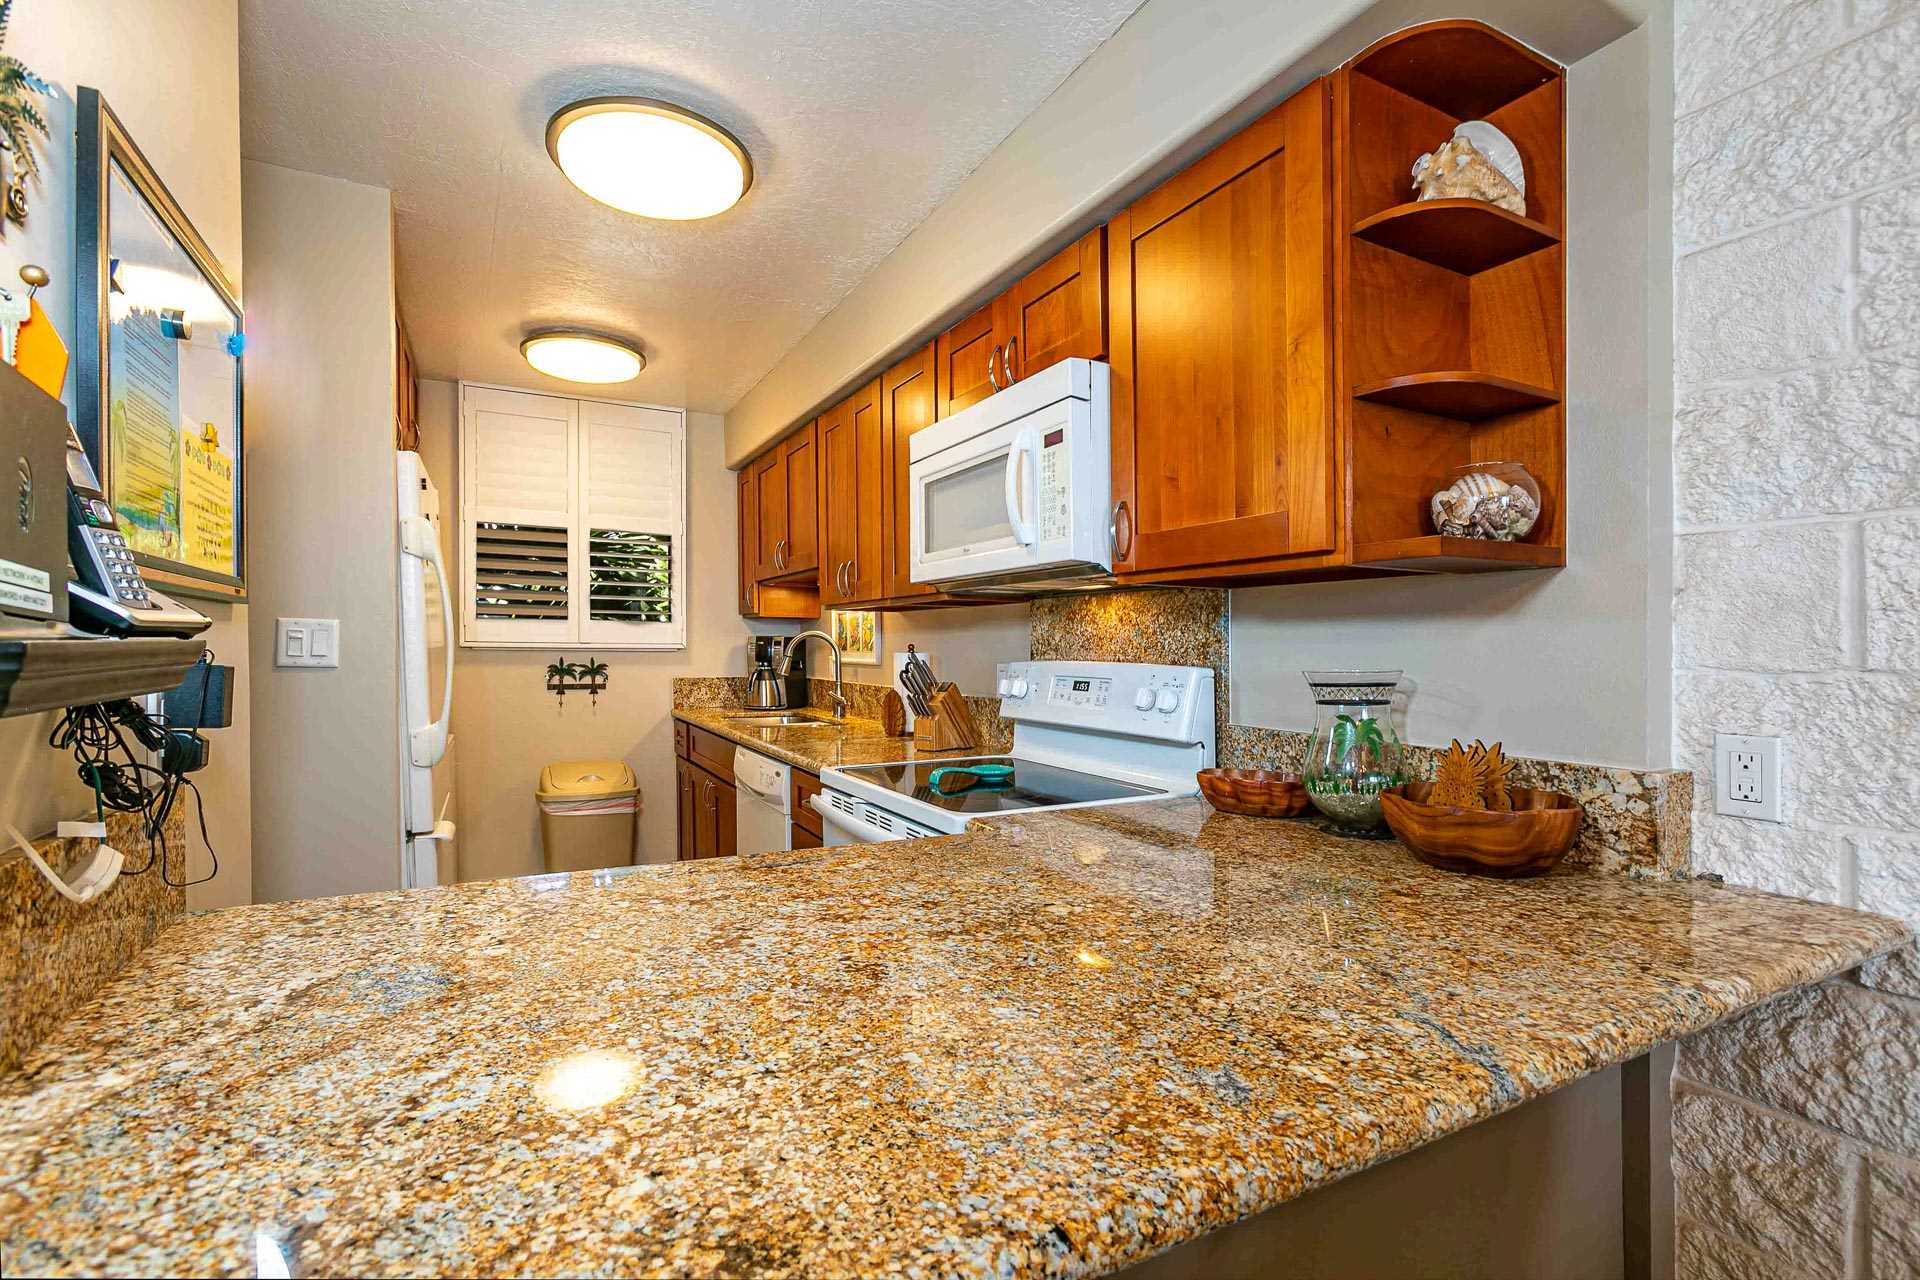 Fully stocked kitchen with all the modern conveniences.